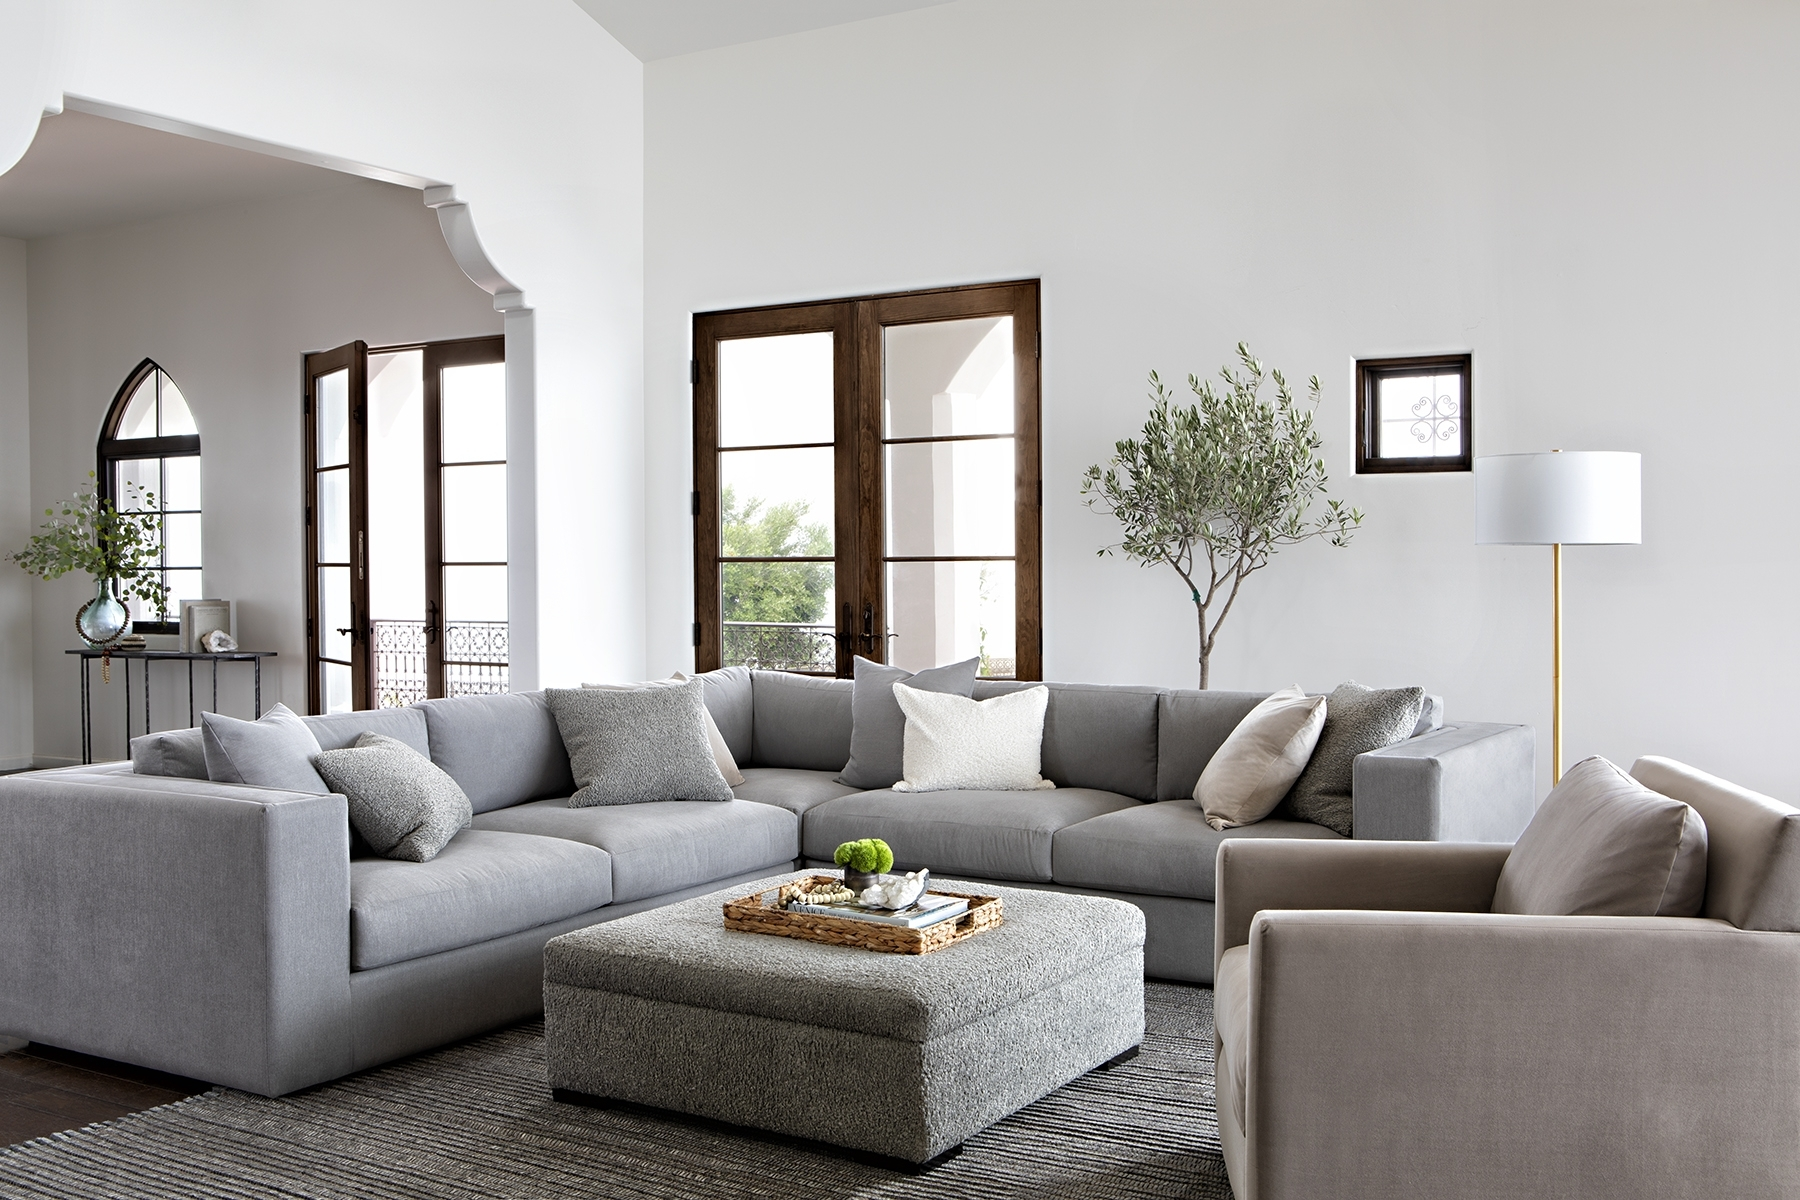 Nate Berkus & Jeremiah Brent's Newest Affordable Collection | Rue Intended For Soane 3 Piece Sectionals By Nate Berkus And Jeremiah Brent (View 14 of 25)